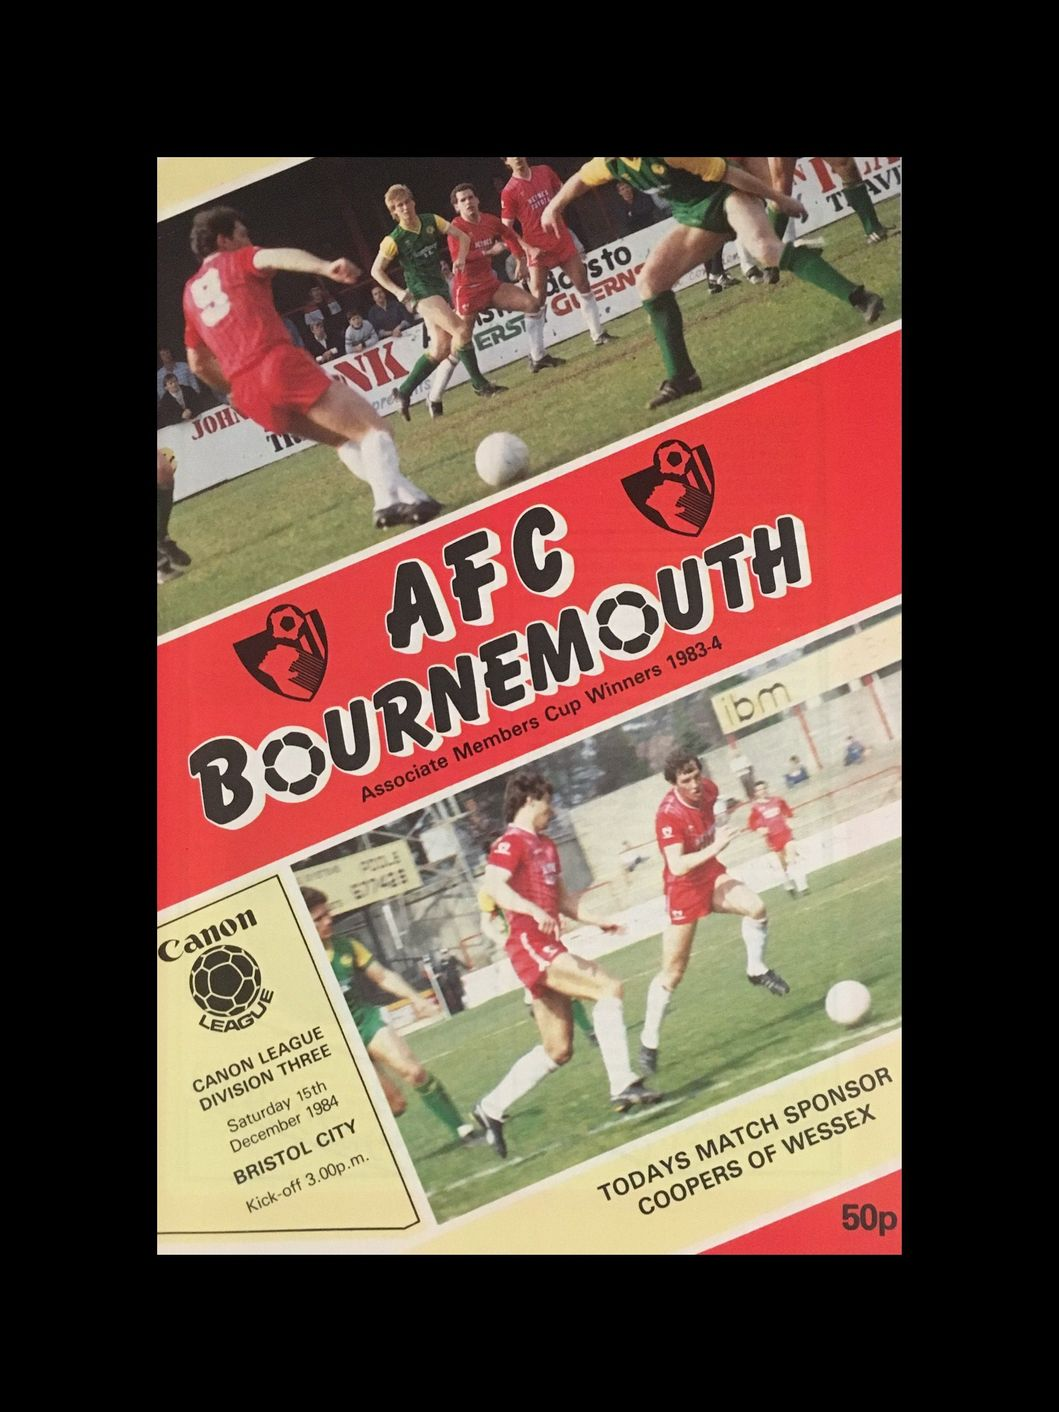 AFC Bournemouth v Bristol City 15-12-84 Programme